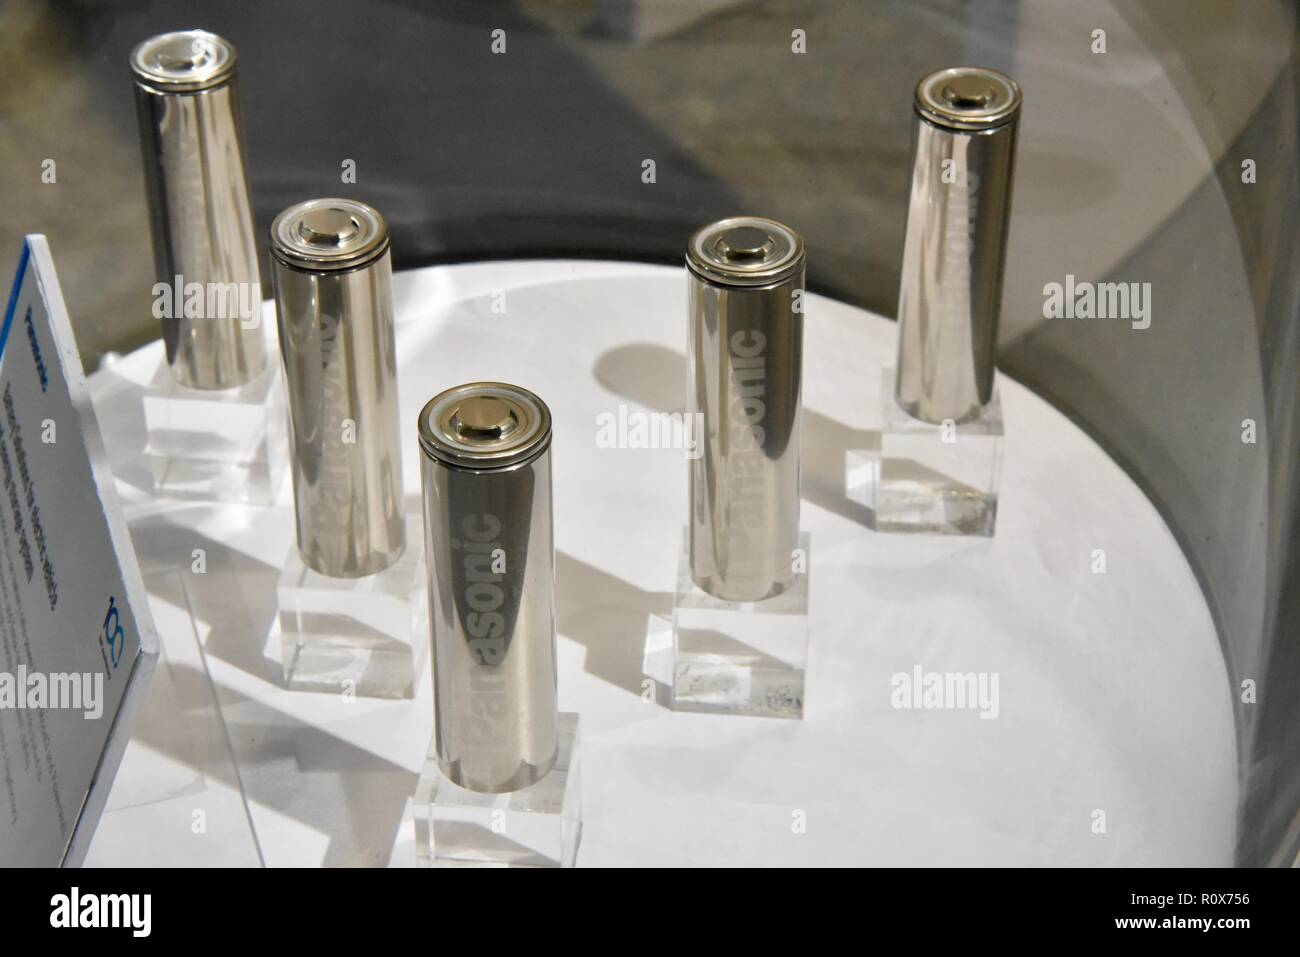 Panasonic lithium ion cells for batteries used in Tesla vehicles, CES (Consumer Electronics Show), world's largest technology show, Las Vegas, USA. Stock Photo